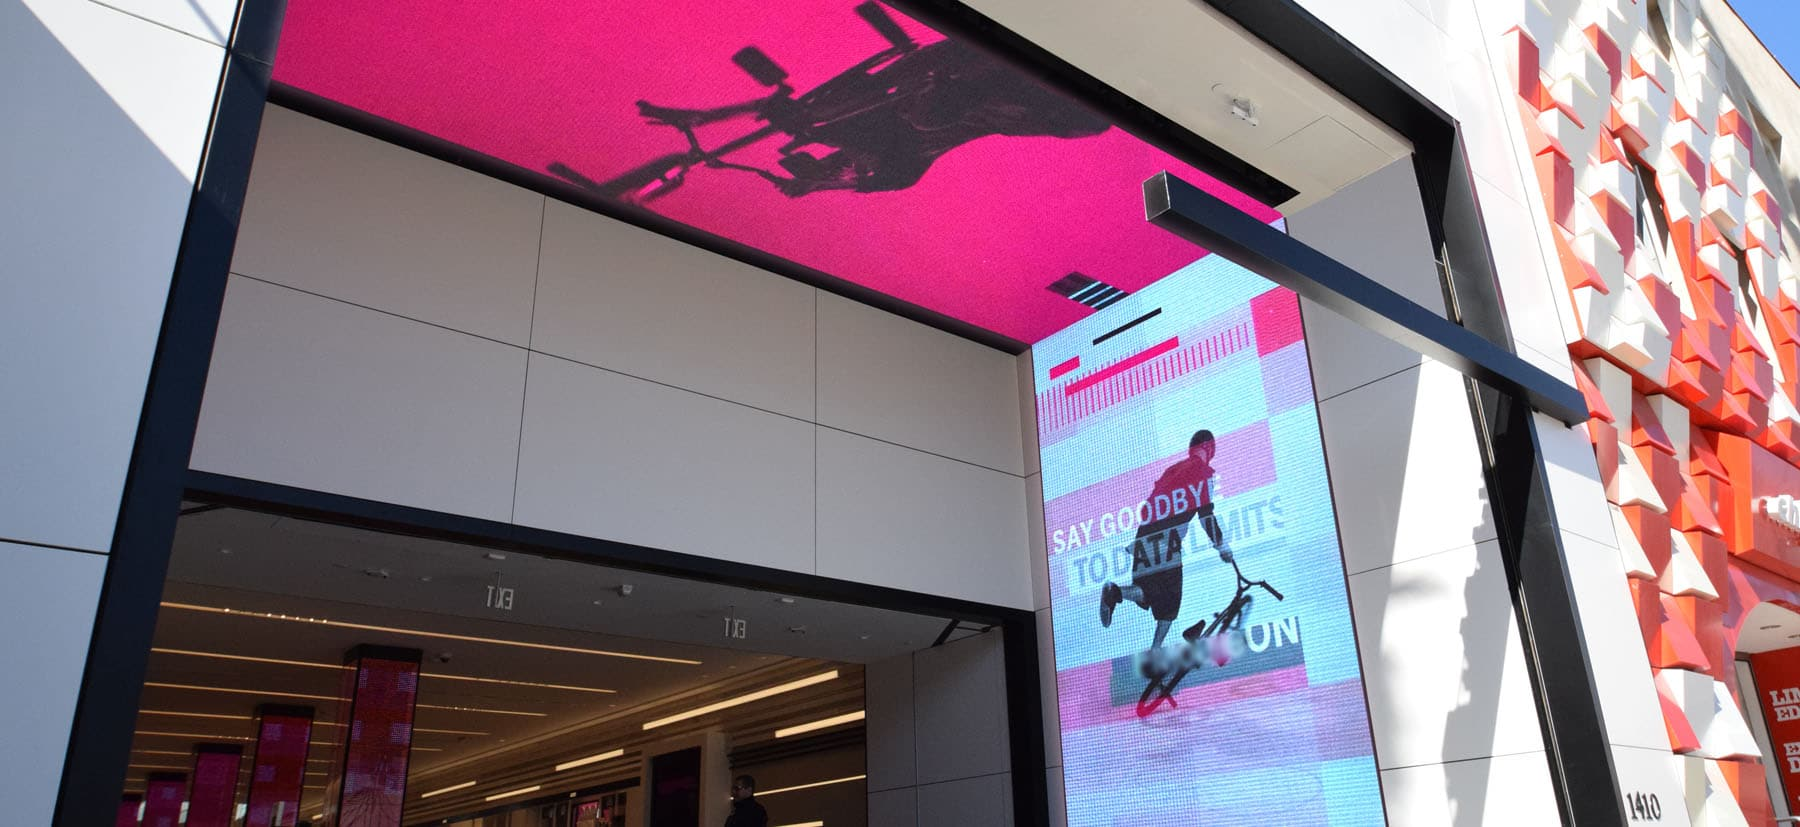 Pro Audio, Video Mounts & Rigging | T-Mobile Custom Video Wall Tunnel